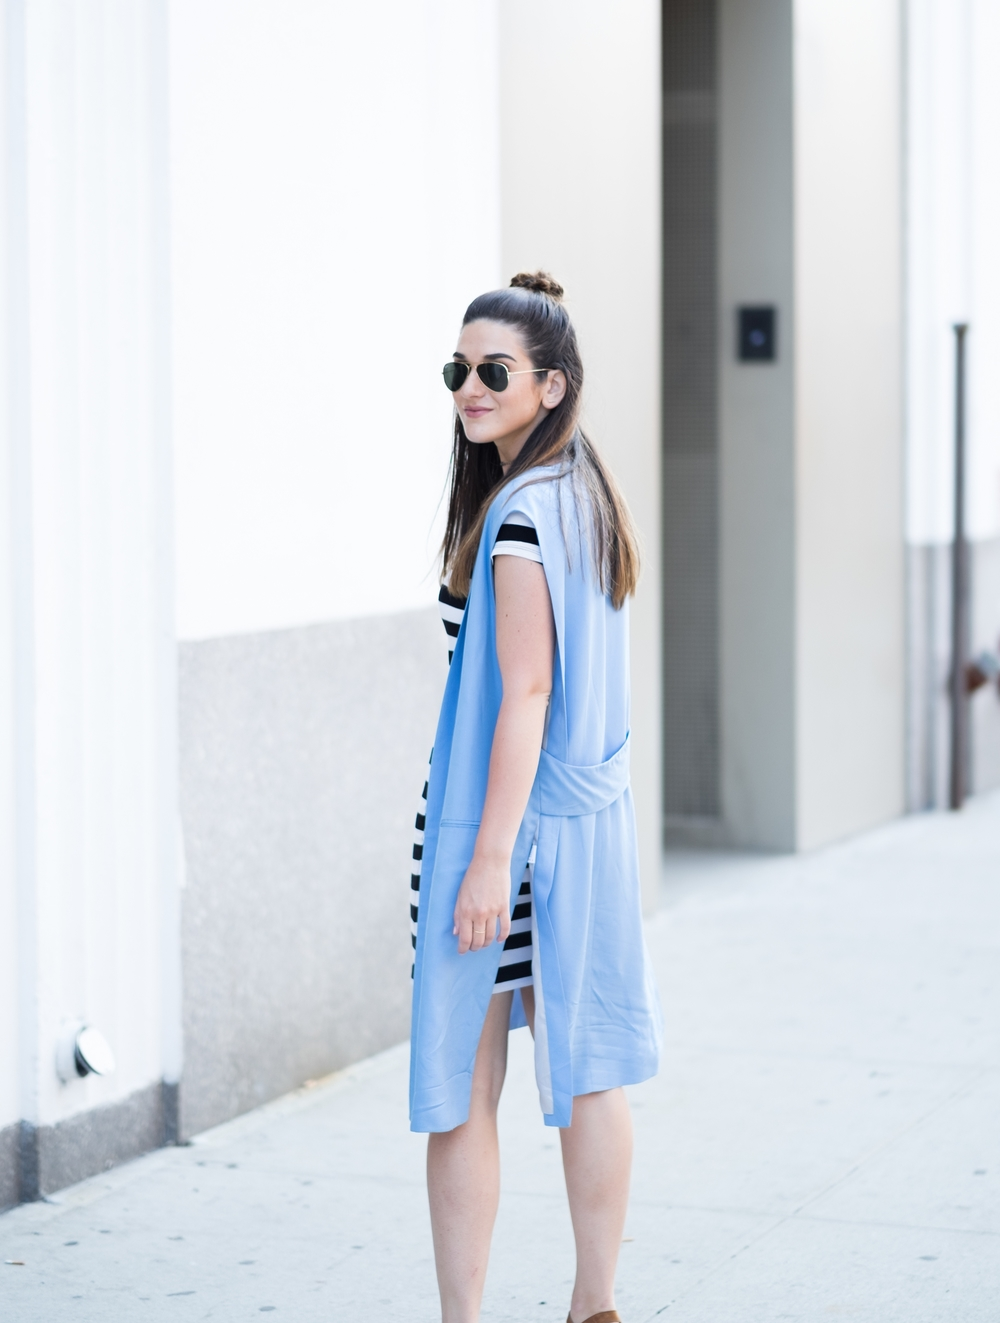 Striped Dress Long Light Blue Vest Louboutins & Love Fashion Blog Esther Santer NYC Street Style Blogger Outfit OOTD Topknot Hair Inspo Girl Women Wedges Dolce Vita Ivanka Trump Soho Tote Aviator Ray-Ban Sunglasses Choker Trend Summer Look Photoshoot.jpg